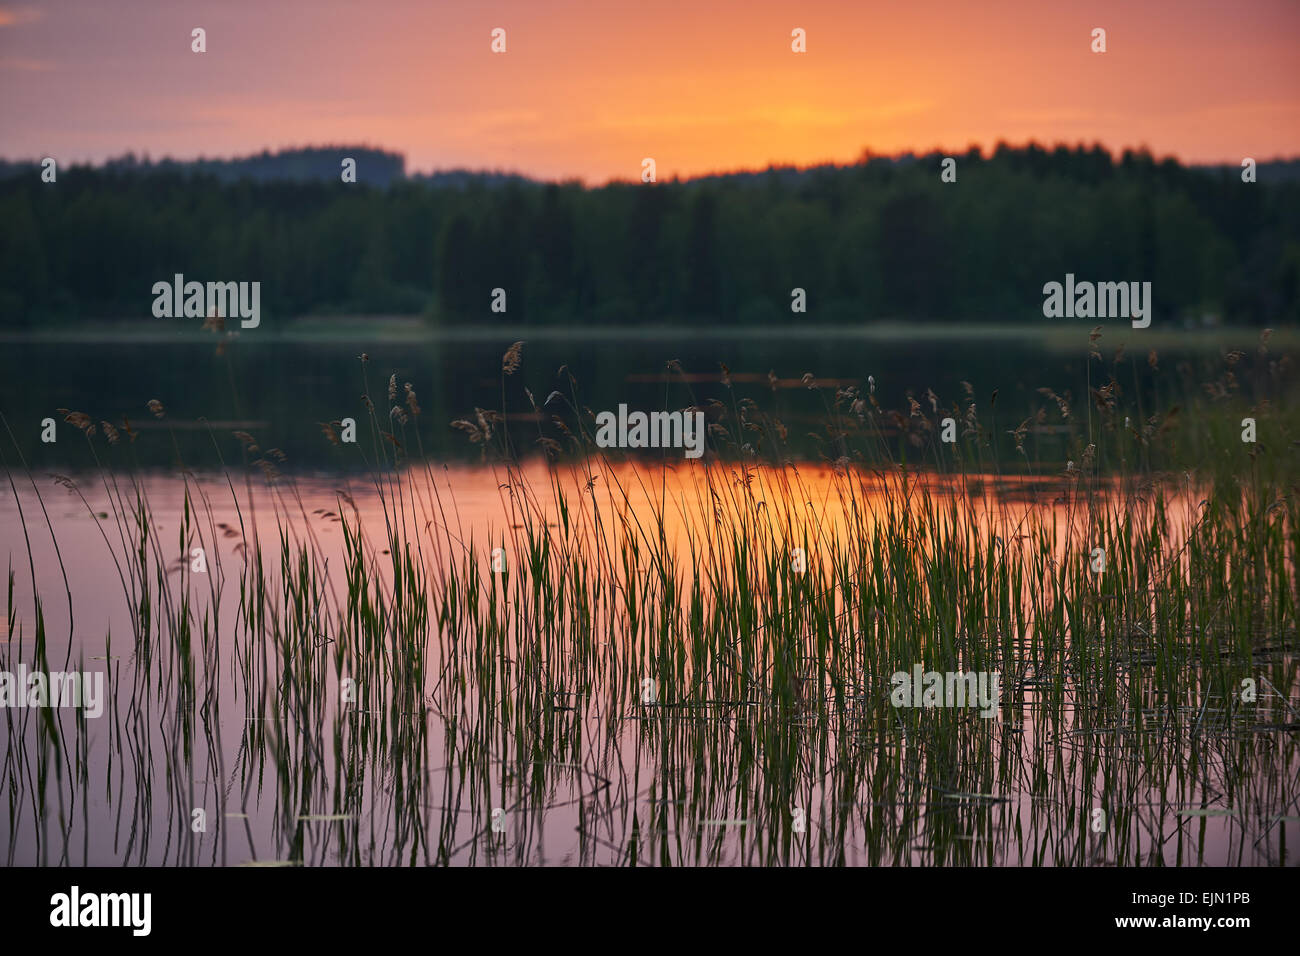 Finnish lake at sunset with water plants in focus and background intentionally blurred - Stock Image